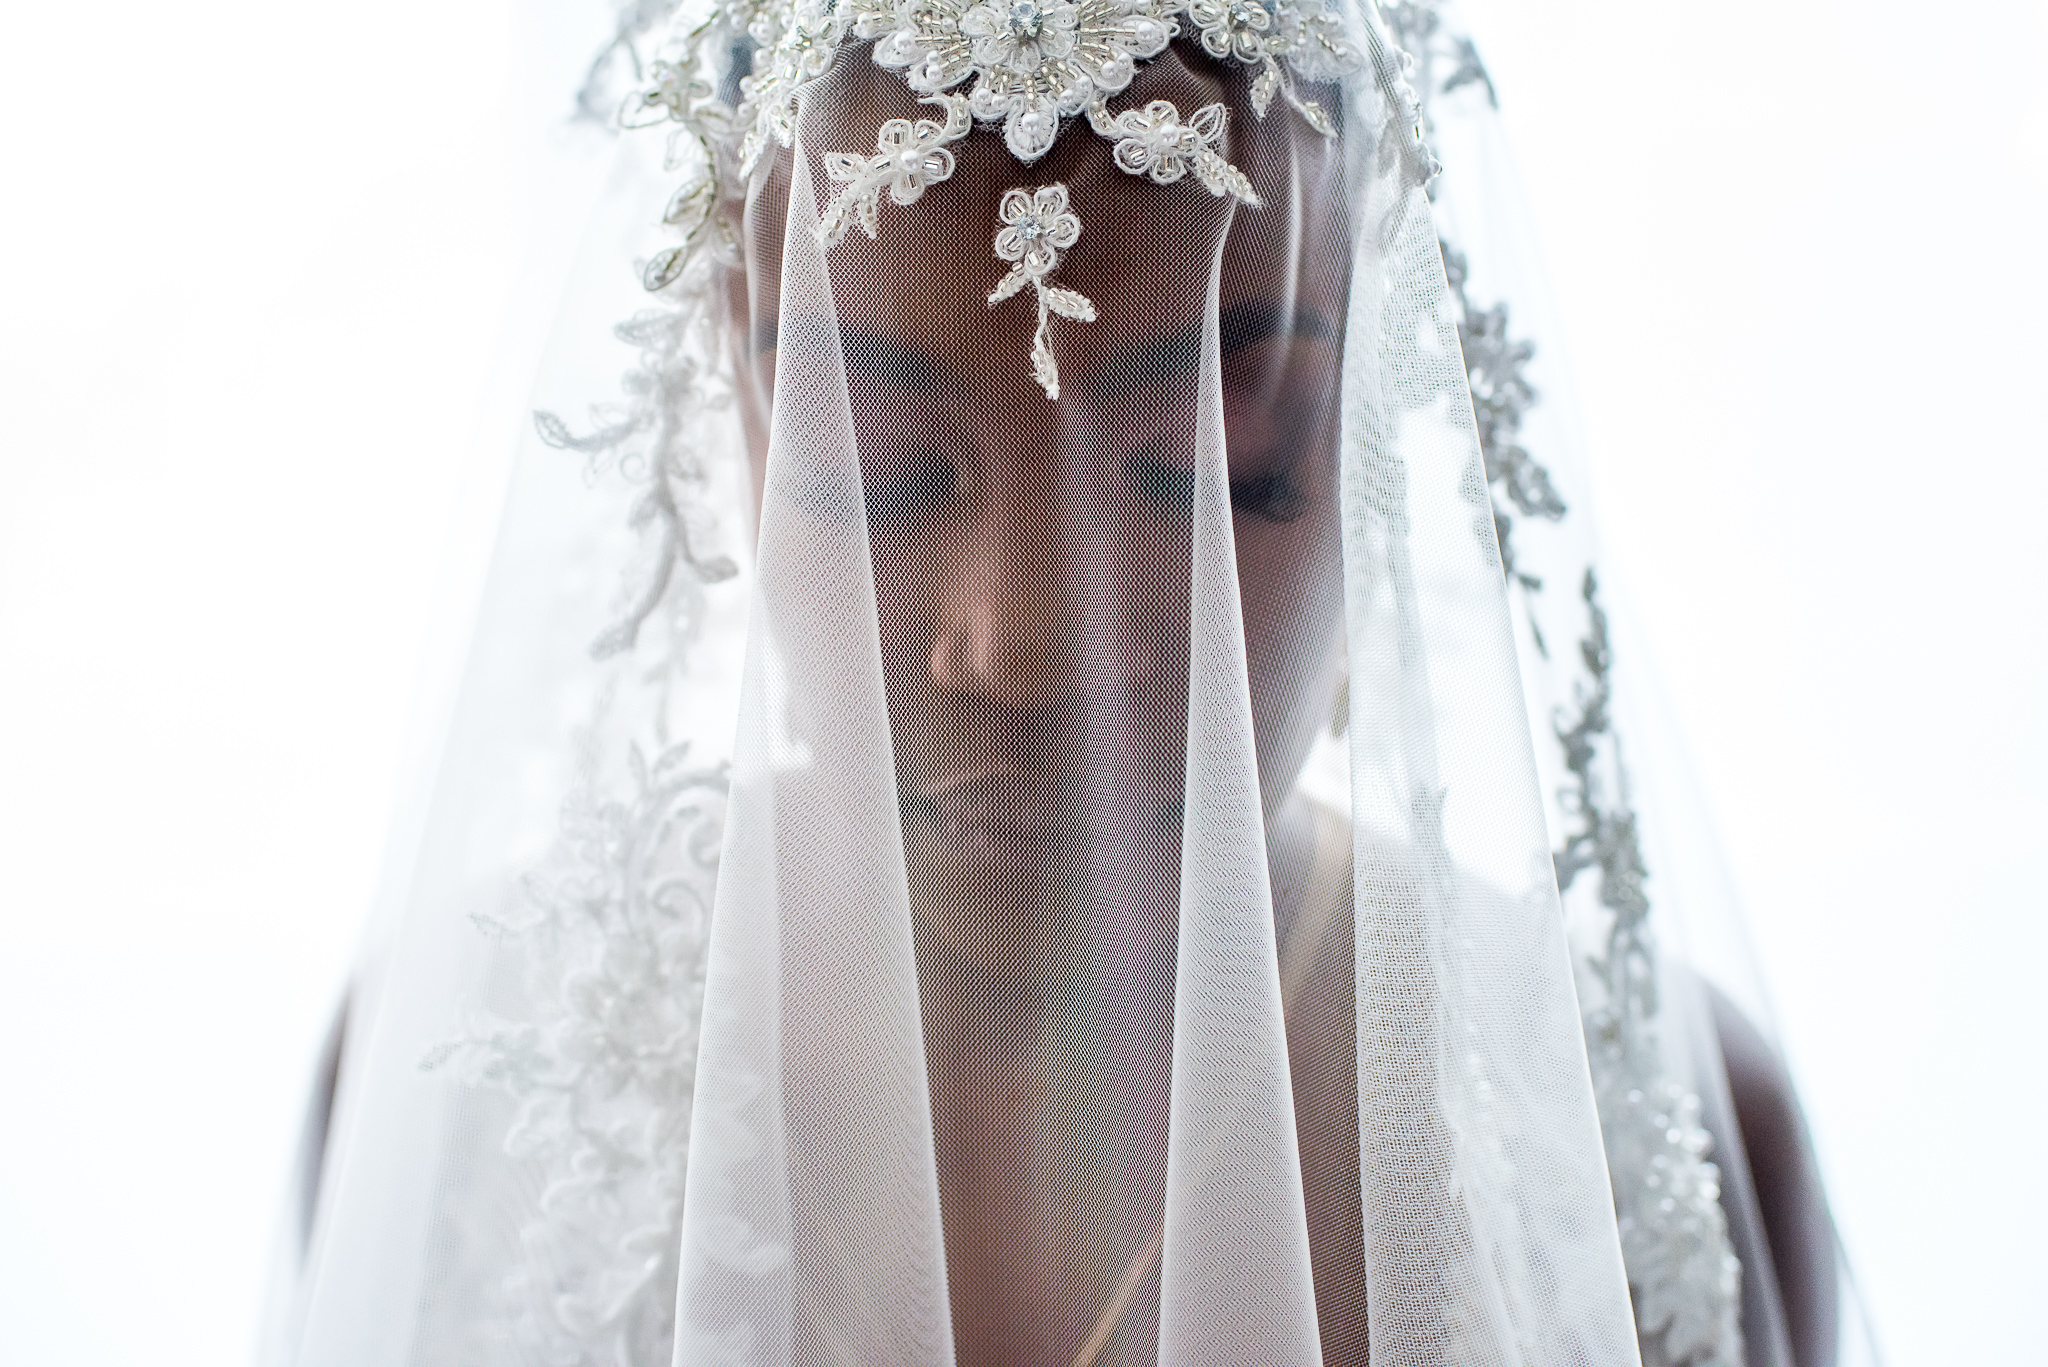 Bride in appliqued veil - photo by Adibe Photography